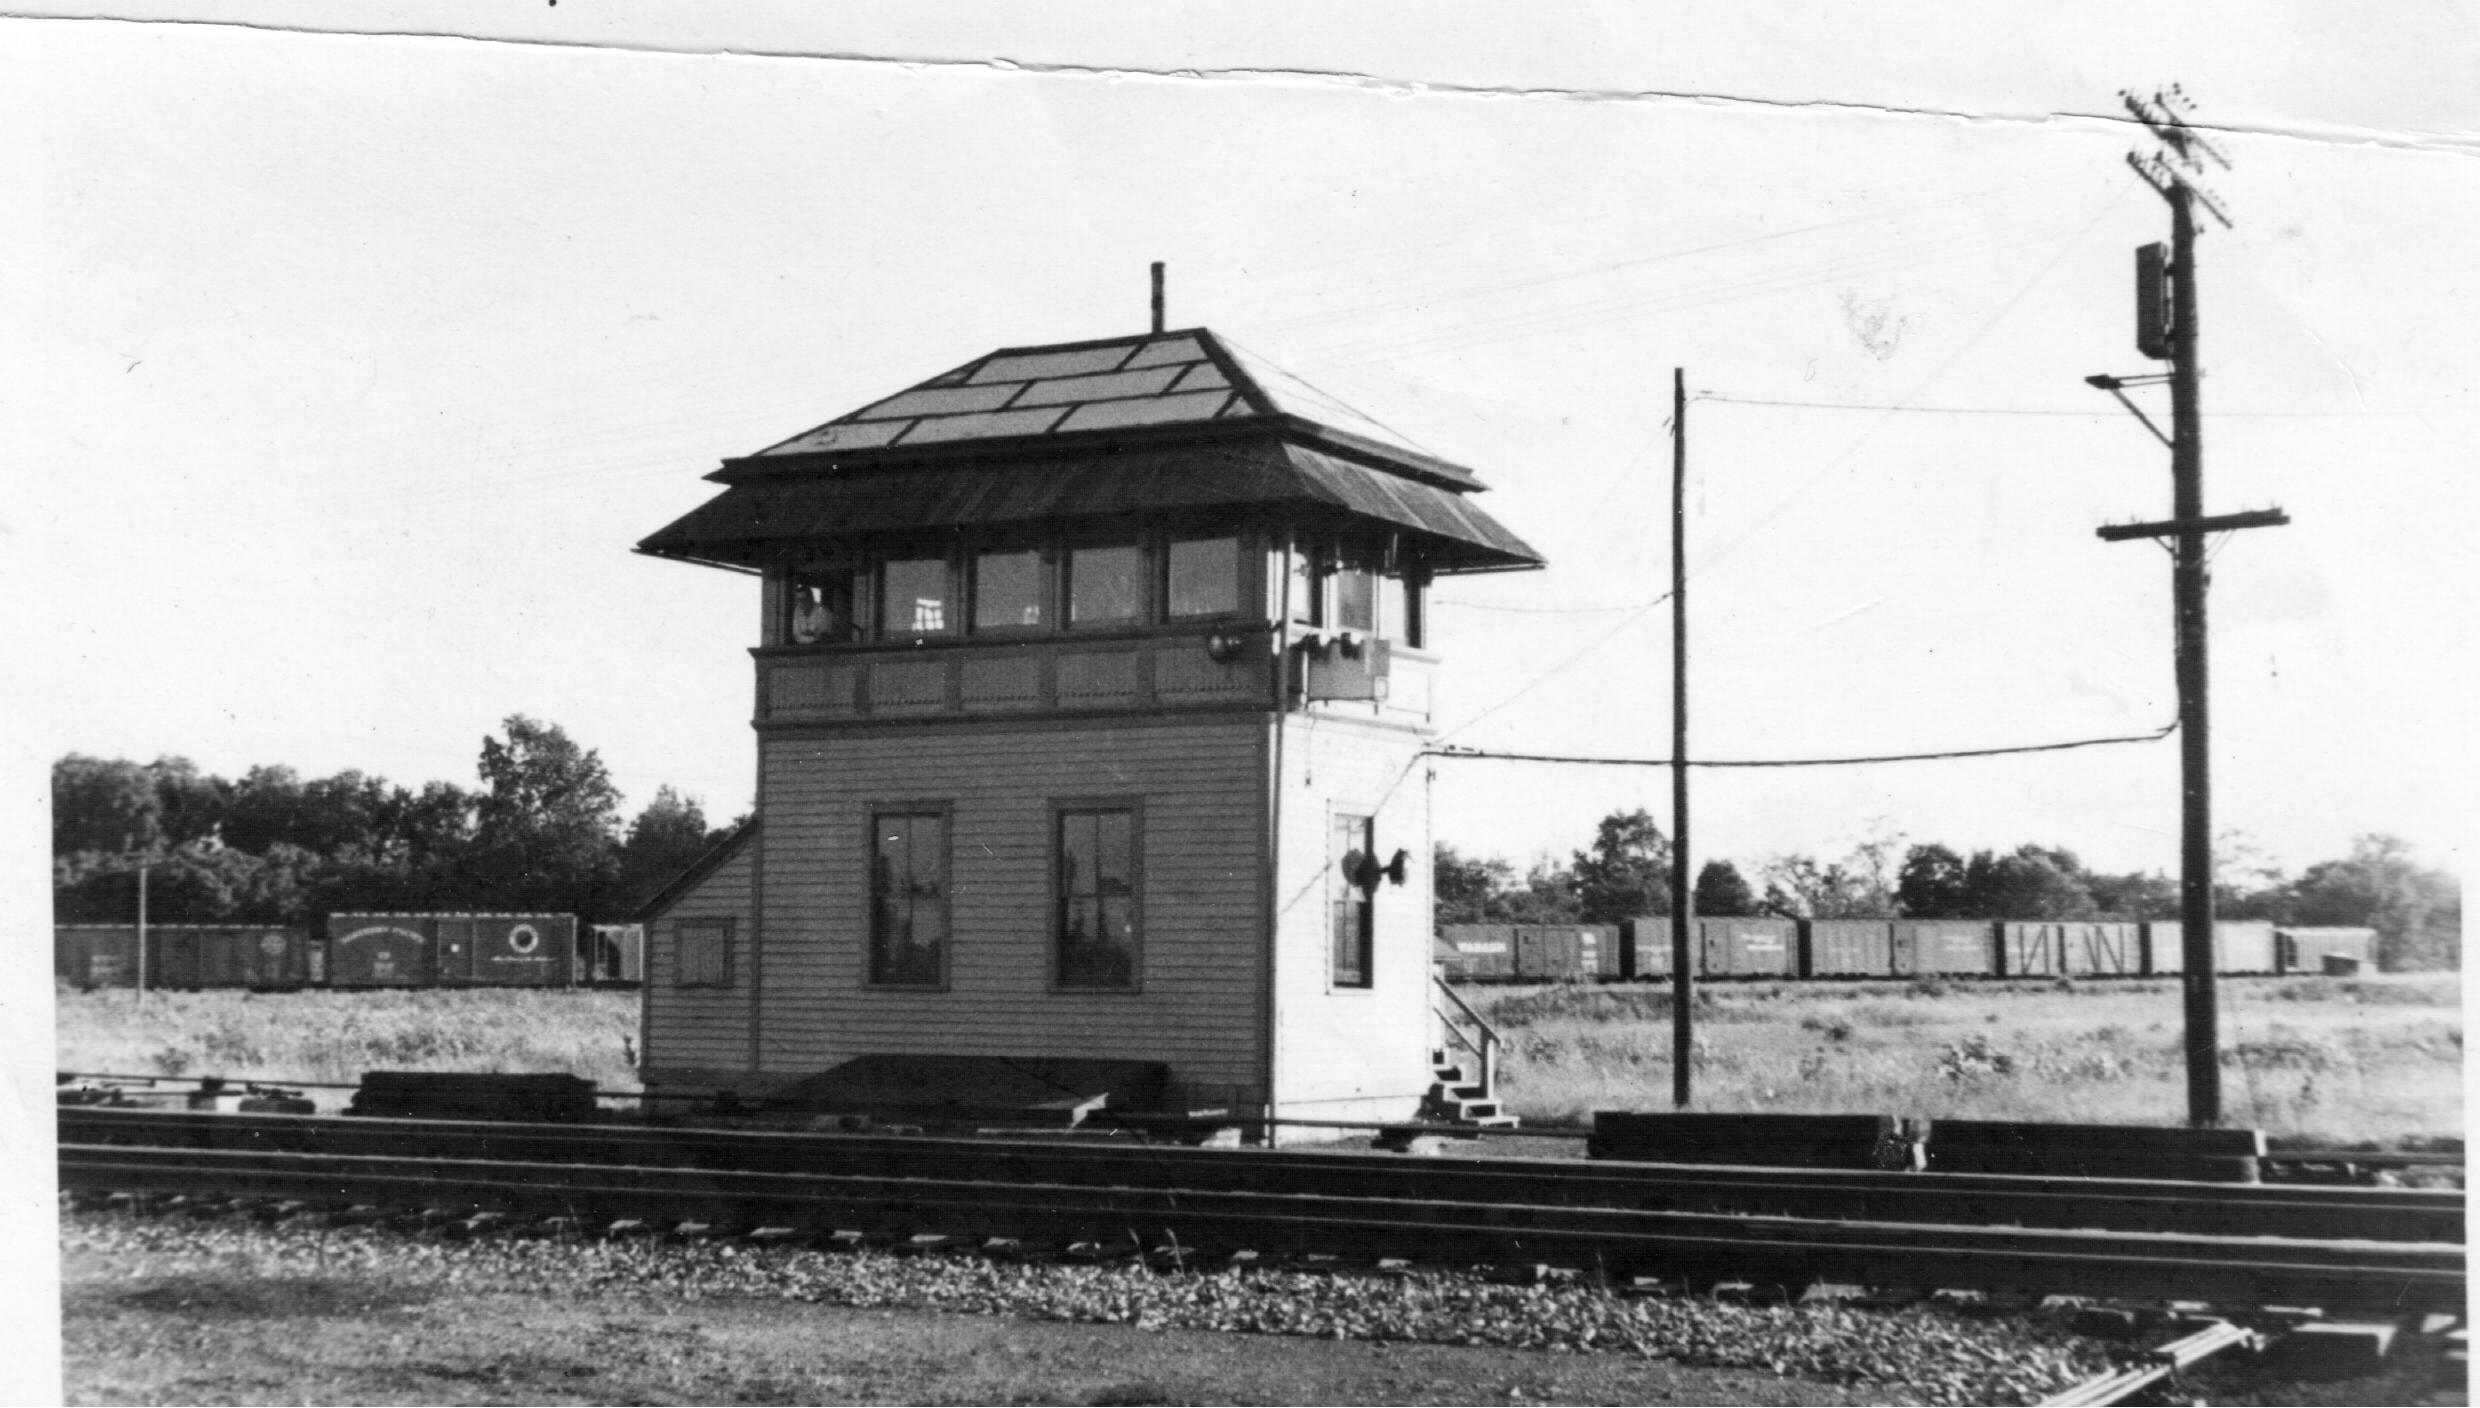 P&L Junction Tower, N.Y.